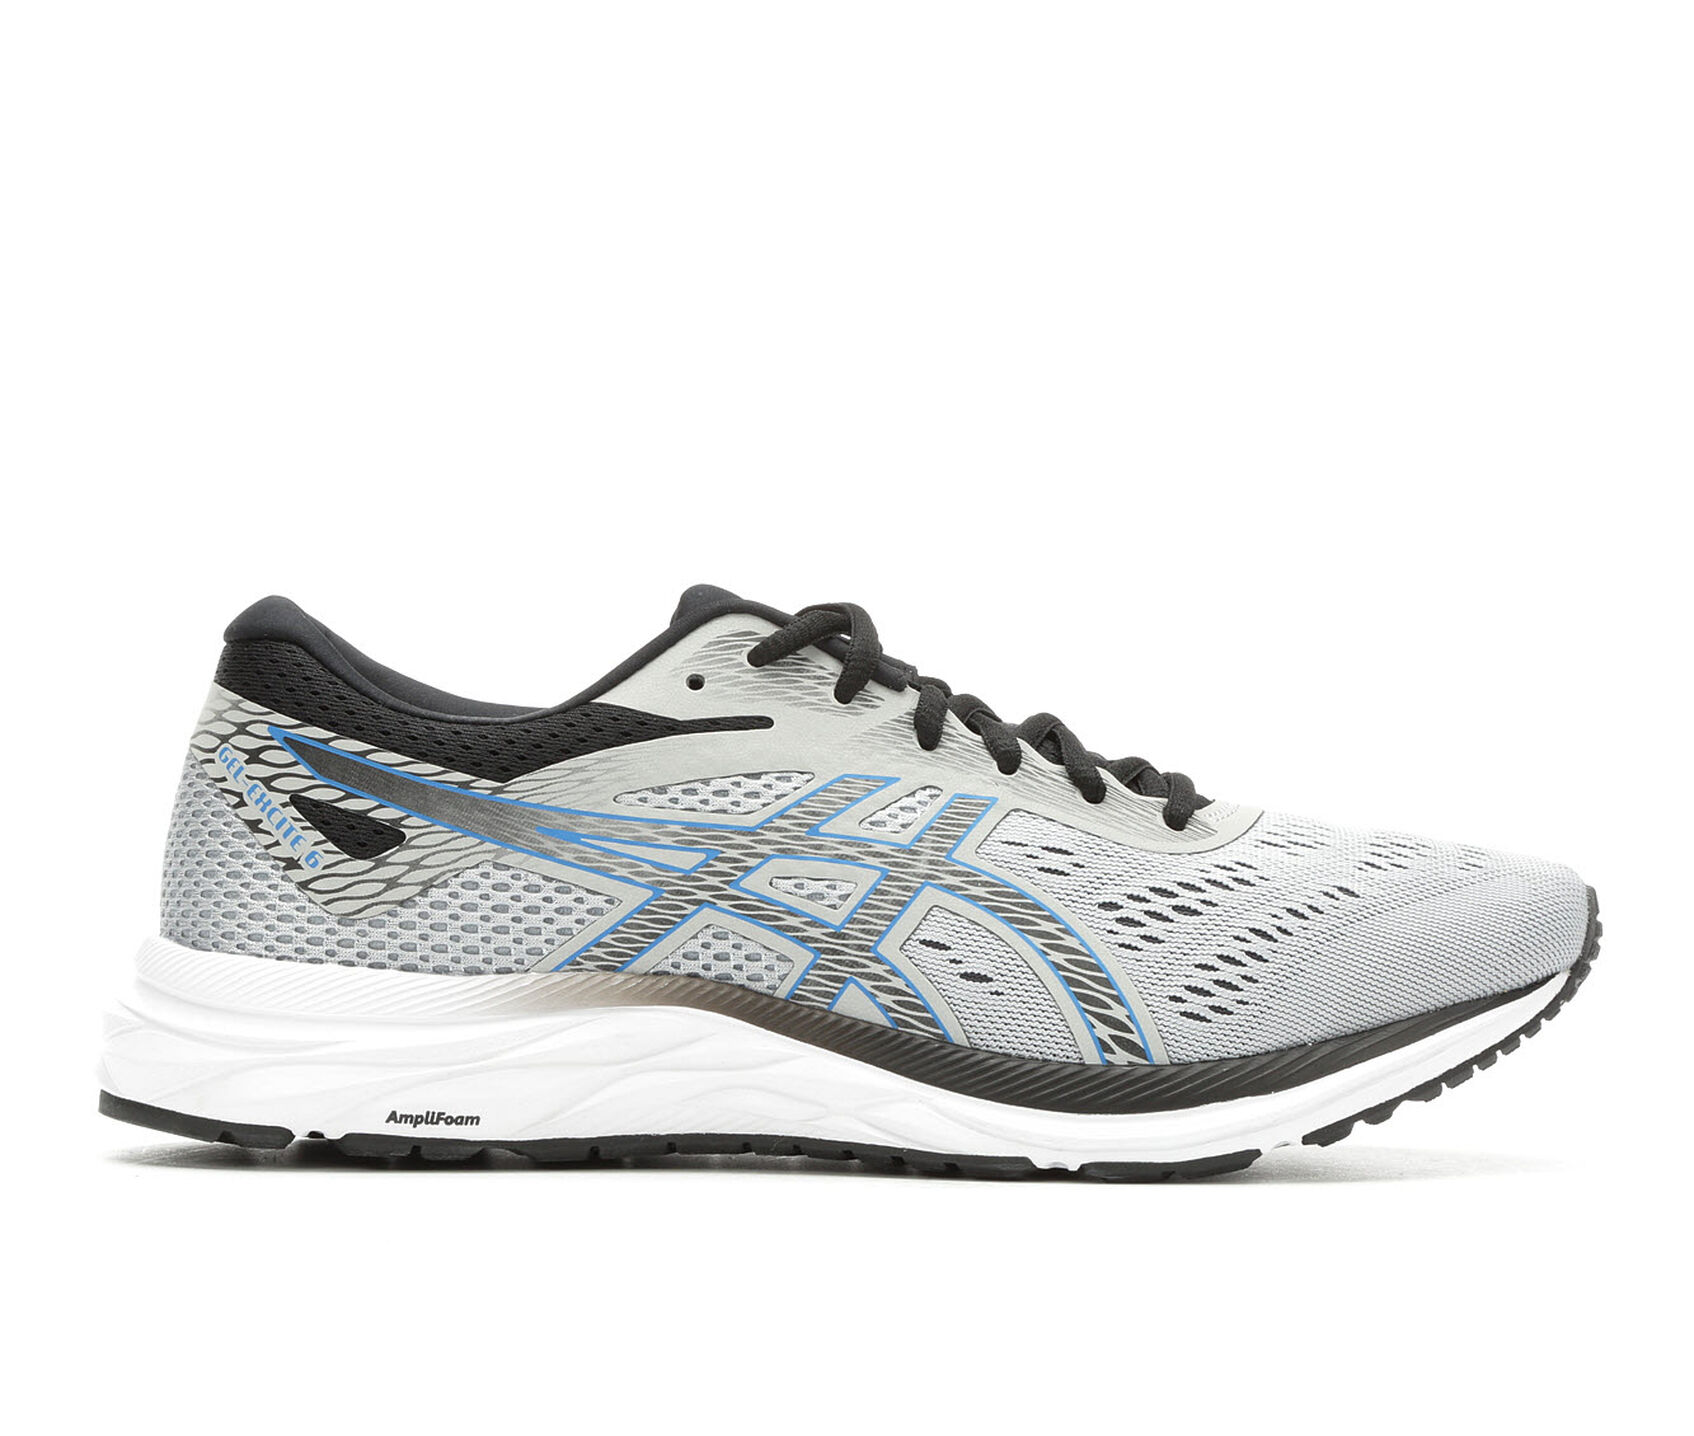 066e4142d ... ASICS Gel Excite 6 Running Shoes. Previous